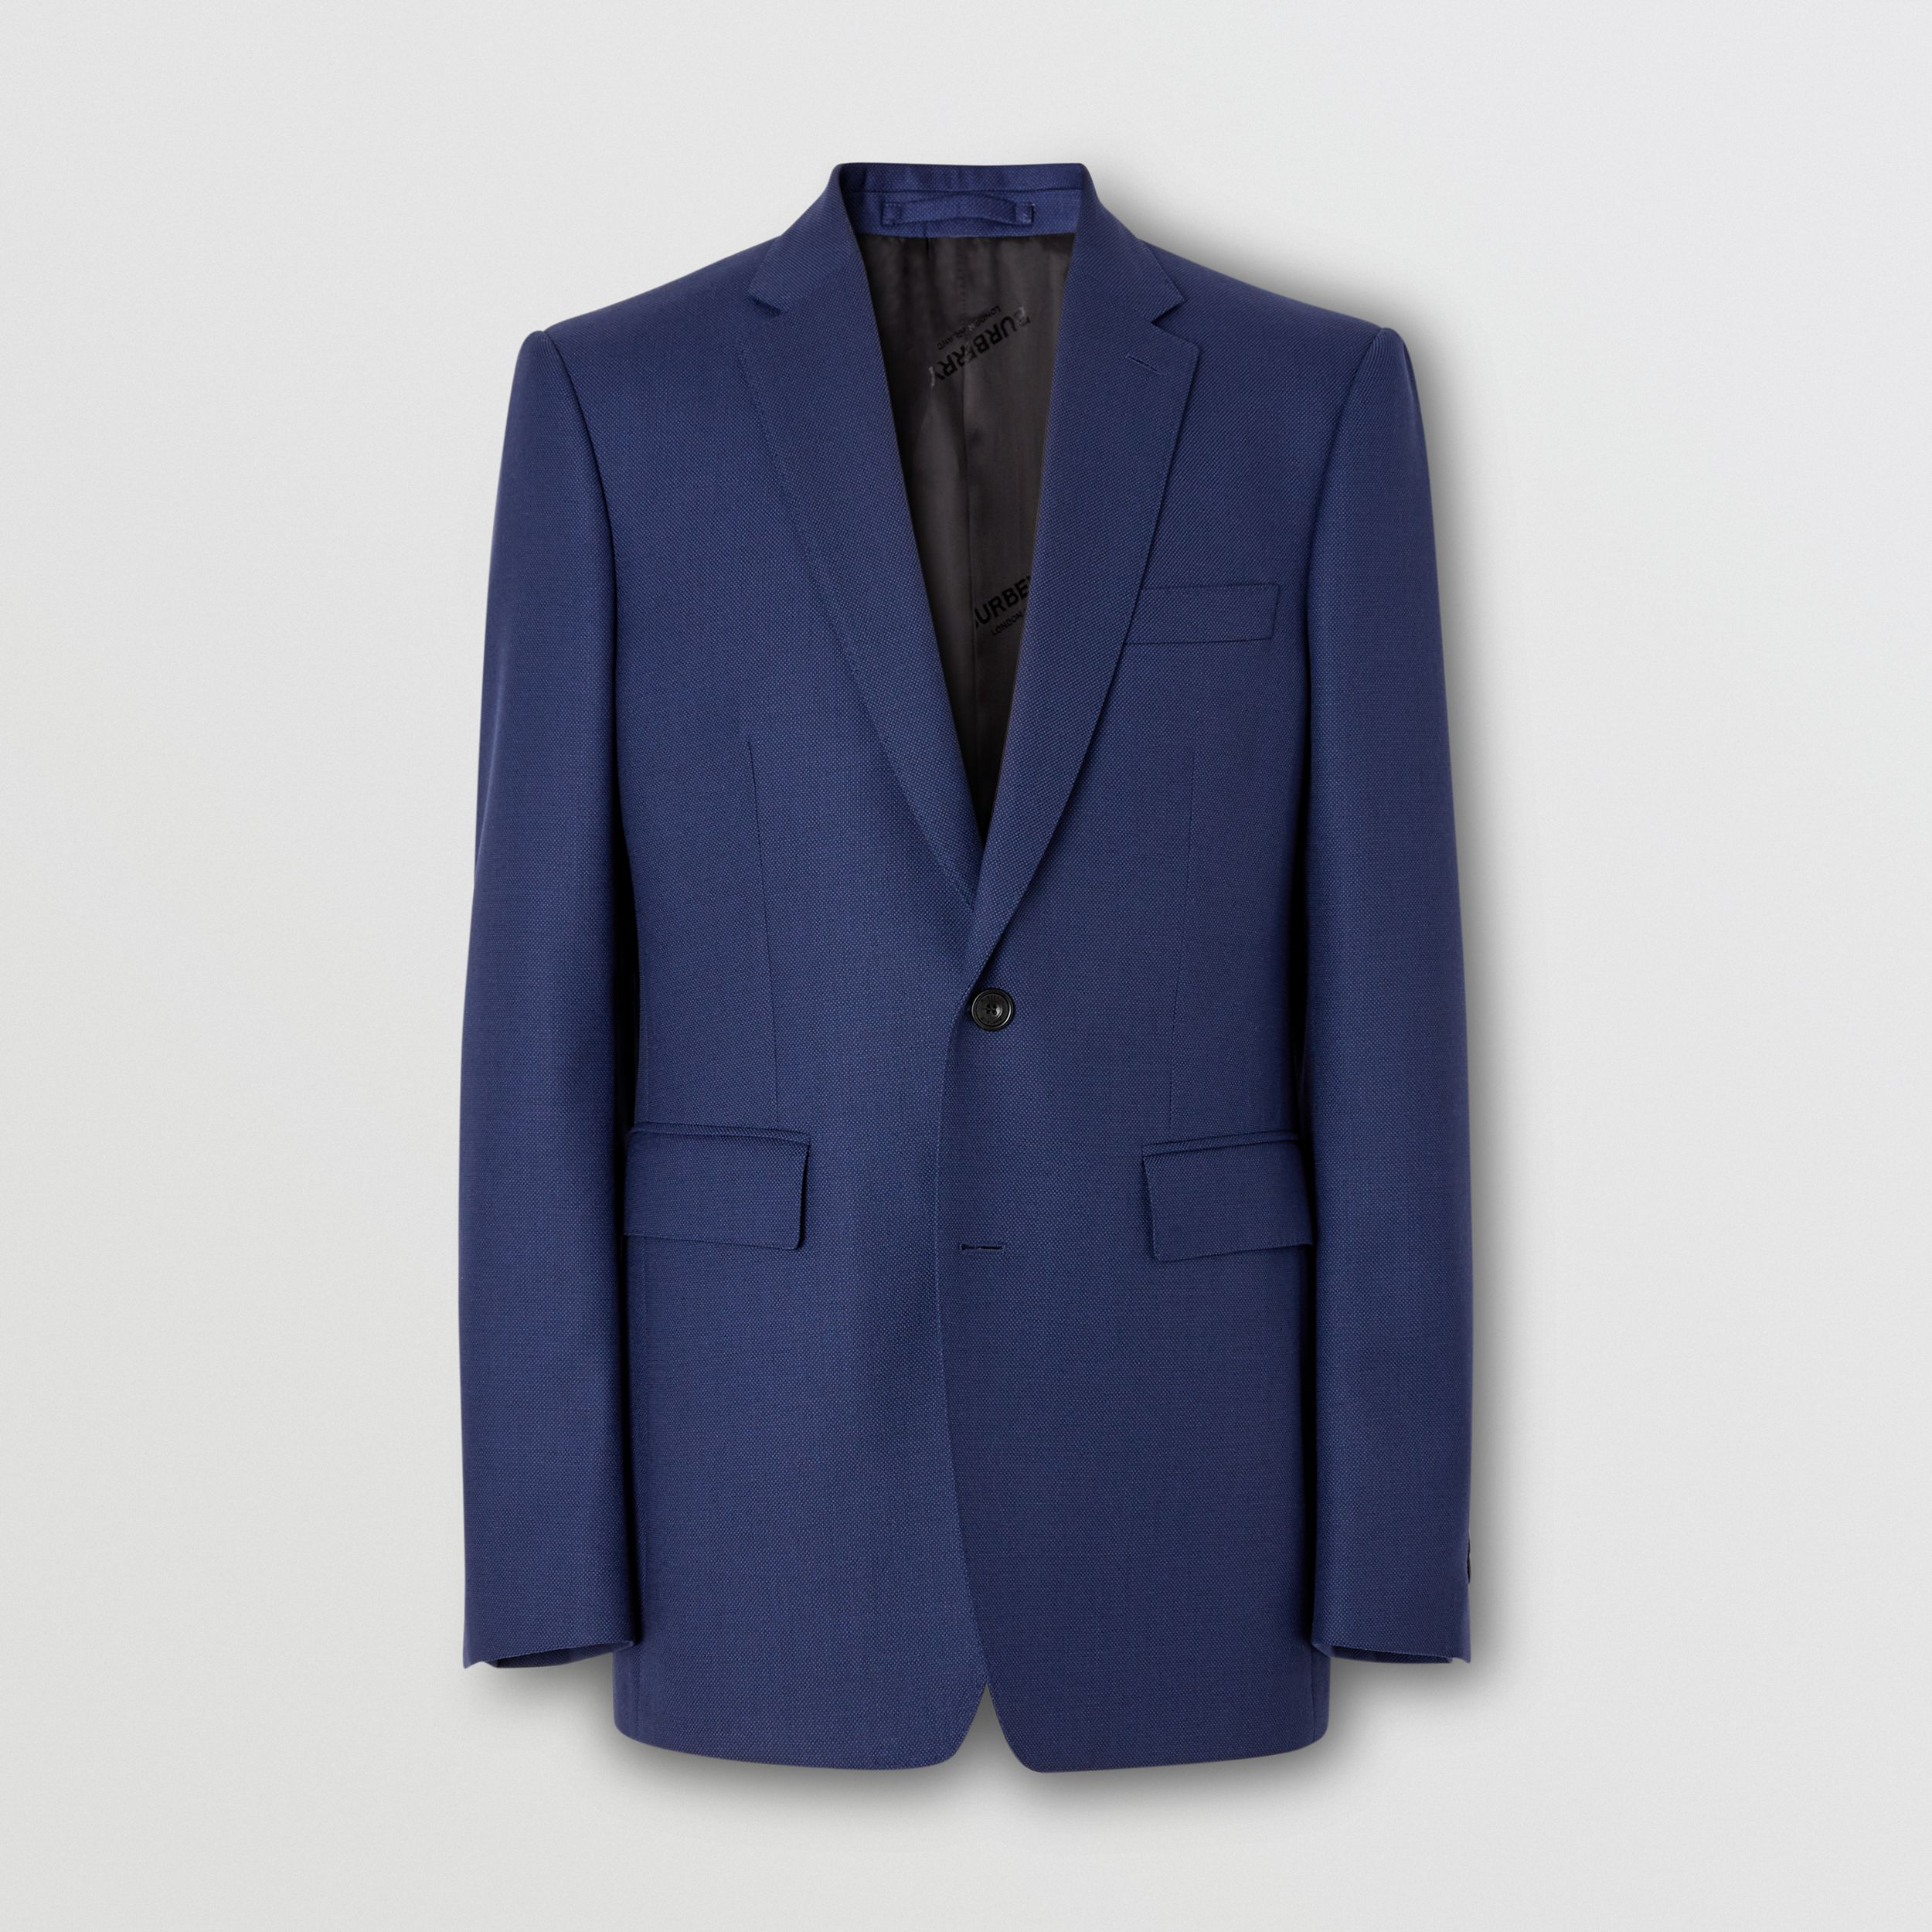 Classic Fit Birdseye Wool Tailored Jacket in Bright Navy - Men | Burberry Singapore - 4